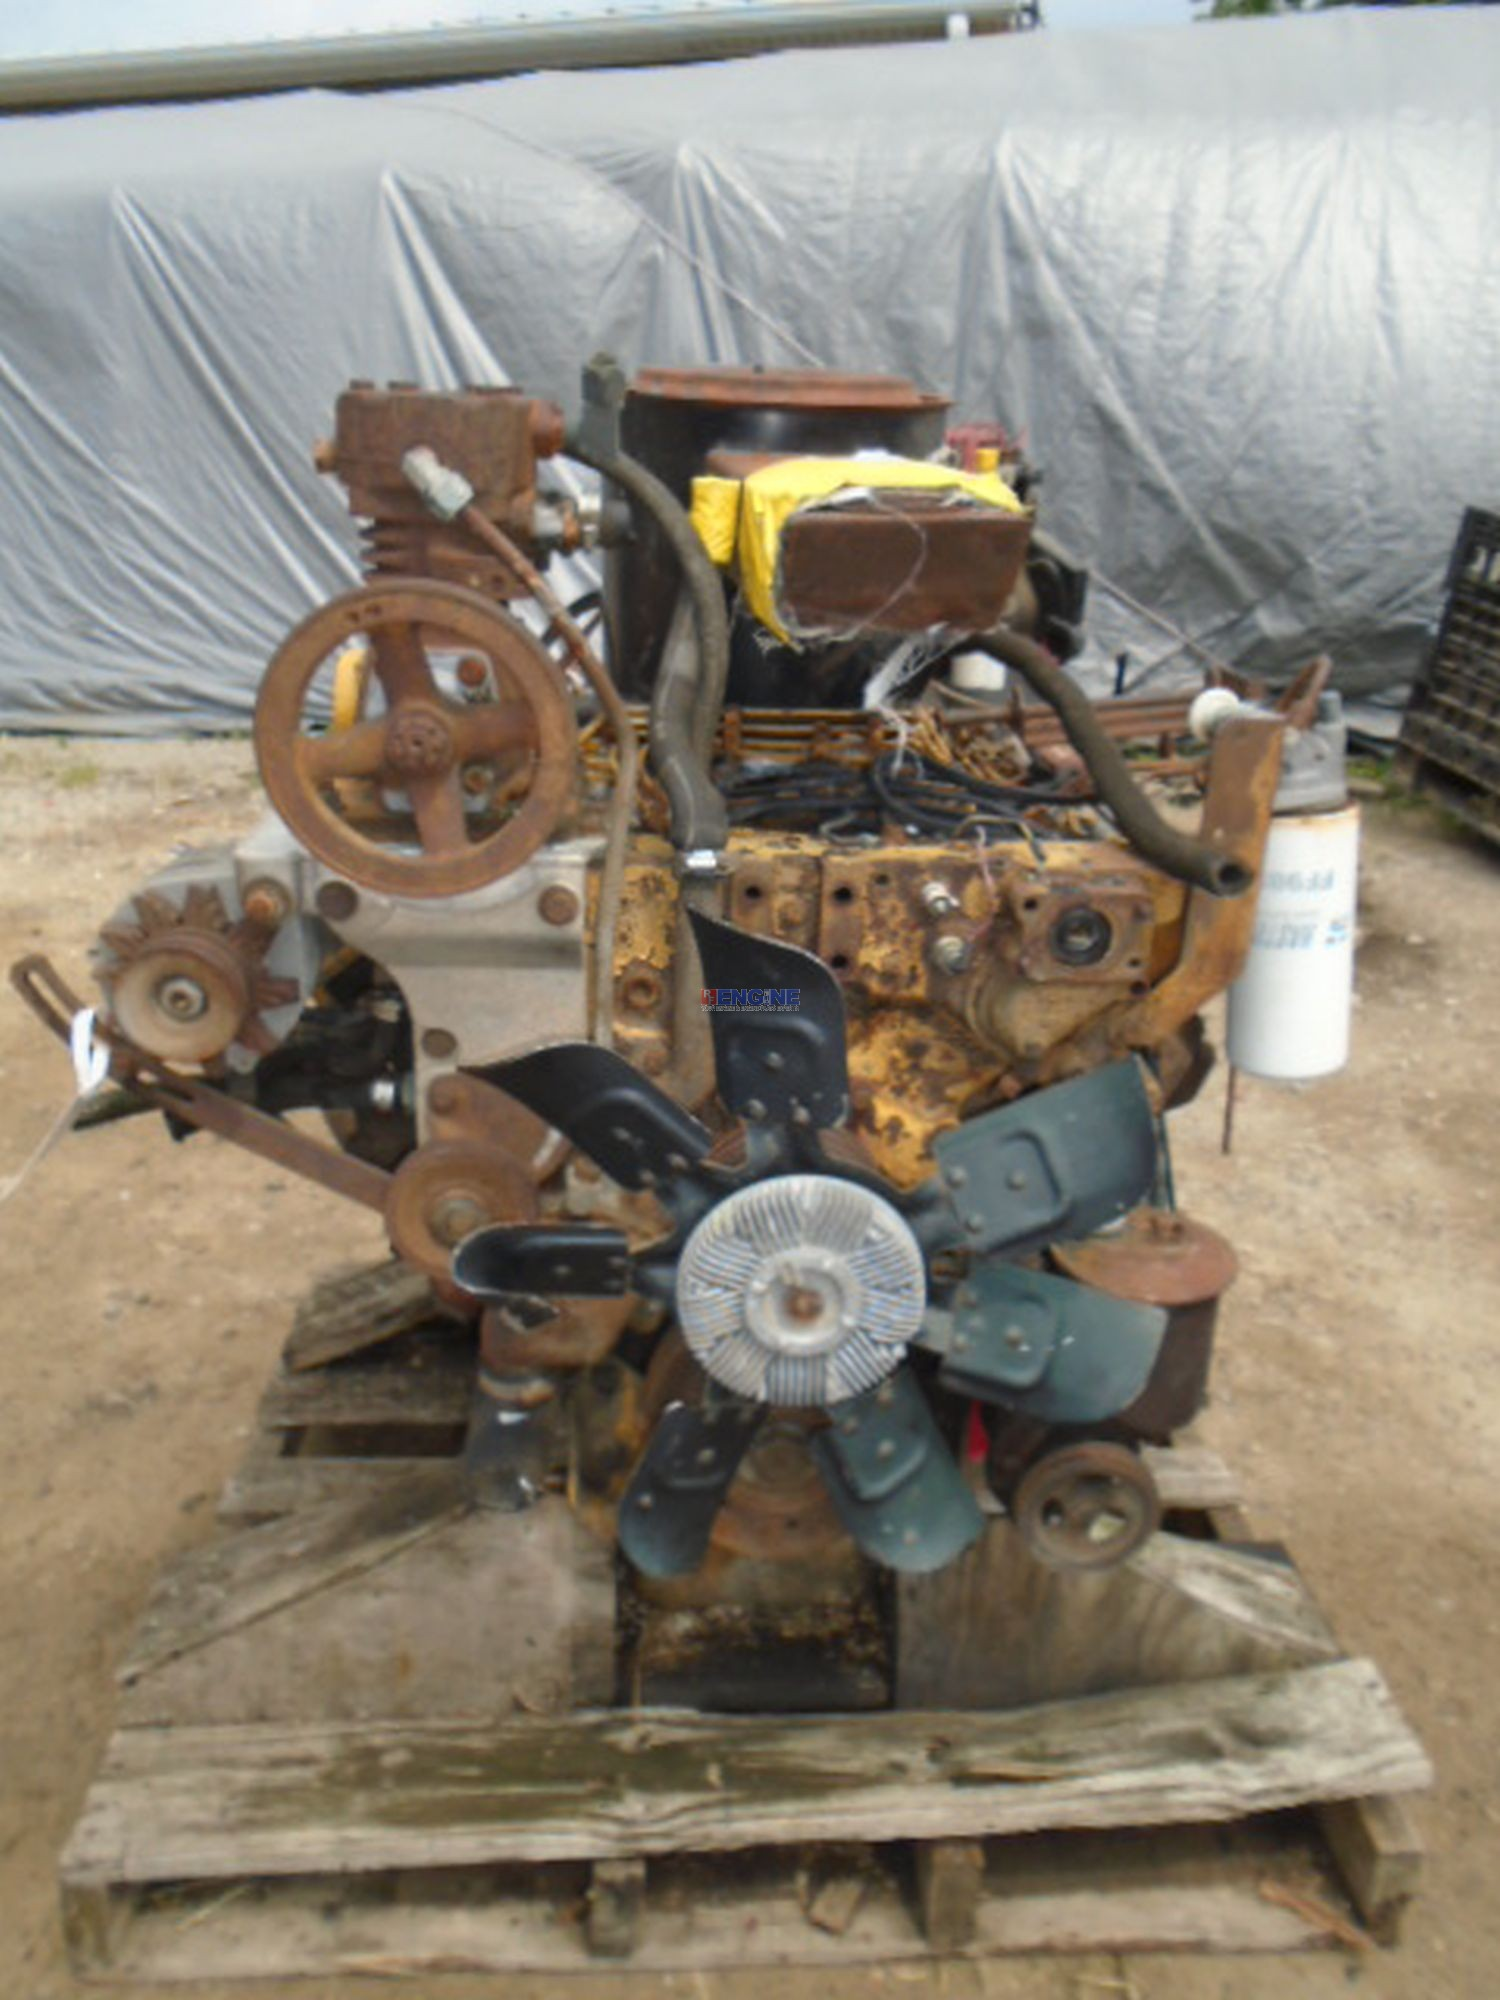 hight resolution of cat 3208 engines and cat 3208 engine parts are always in stock at capital reman exchange including